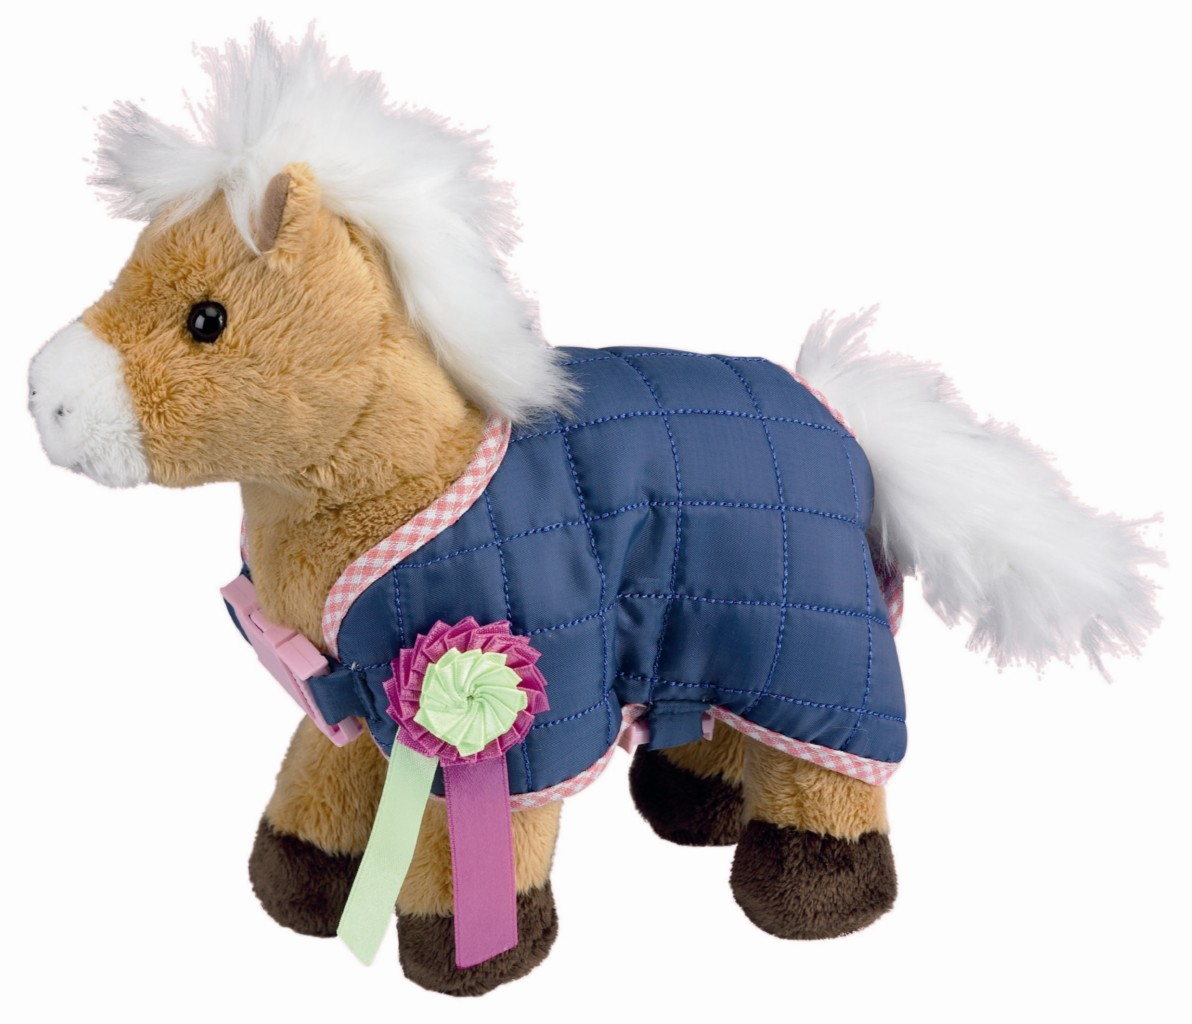 Horse Toys For Girls : Spiegelburg horse friends plush soft toy choose